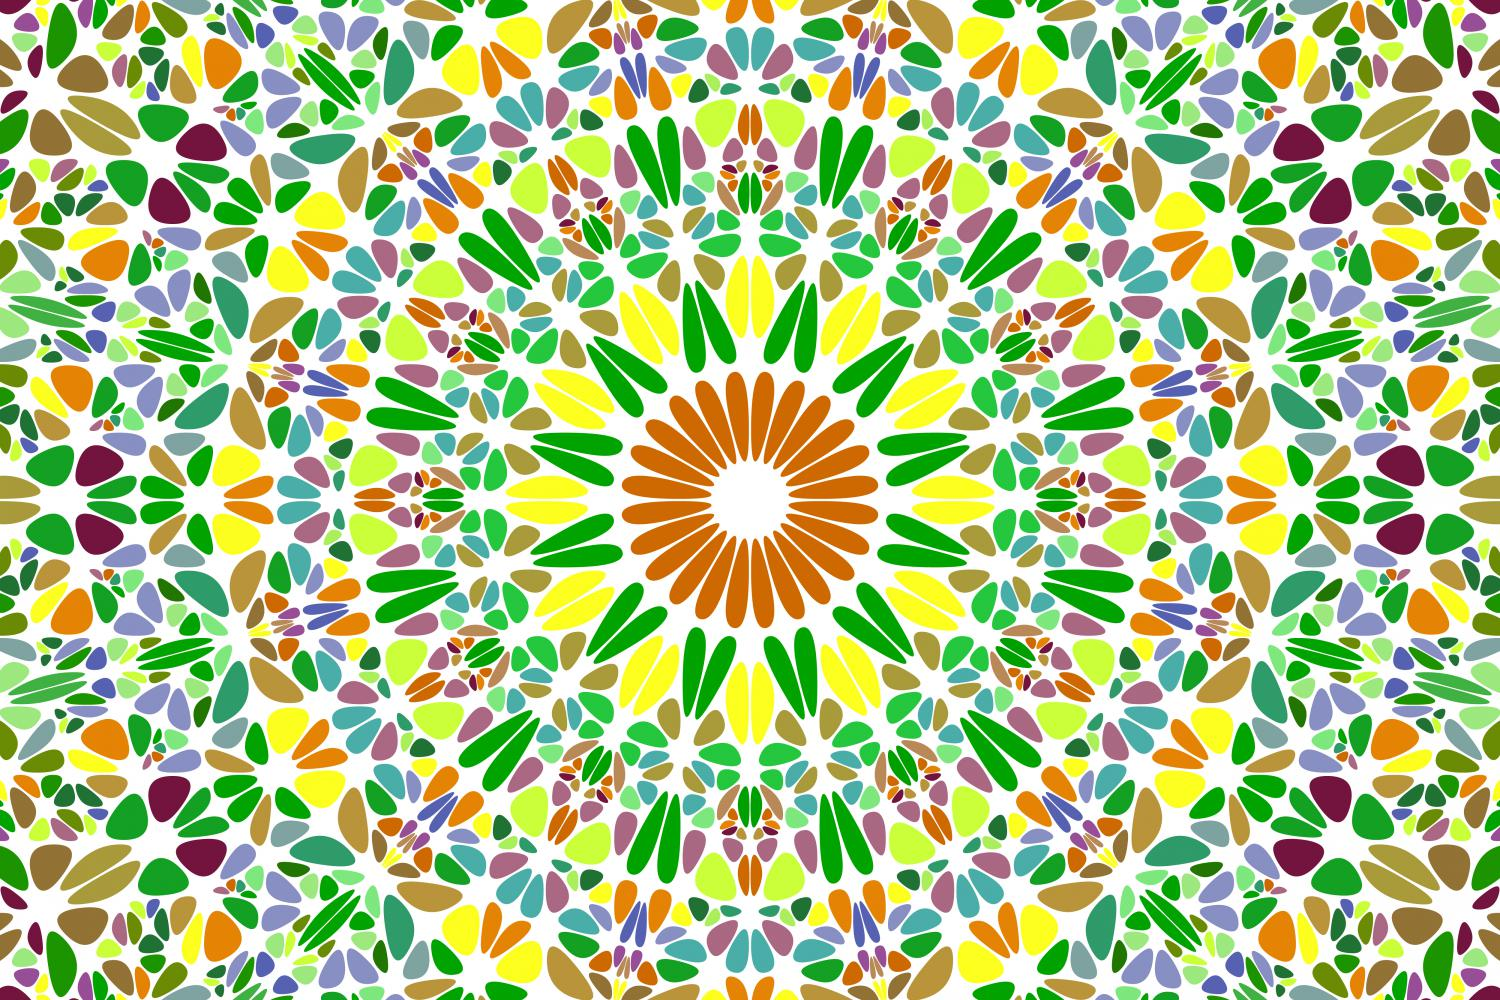 48 Floral Mandala Backgrounds example image 19